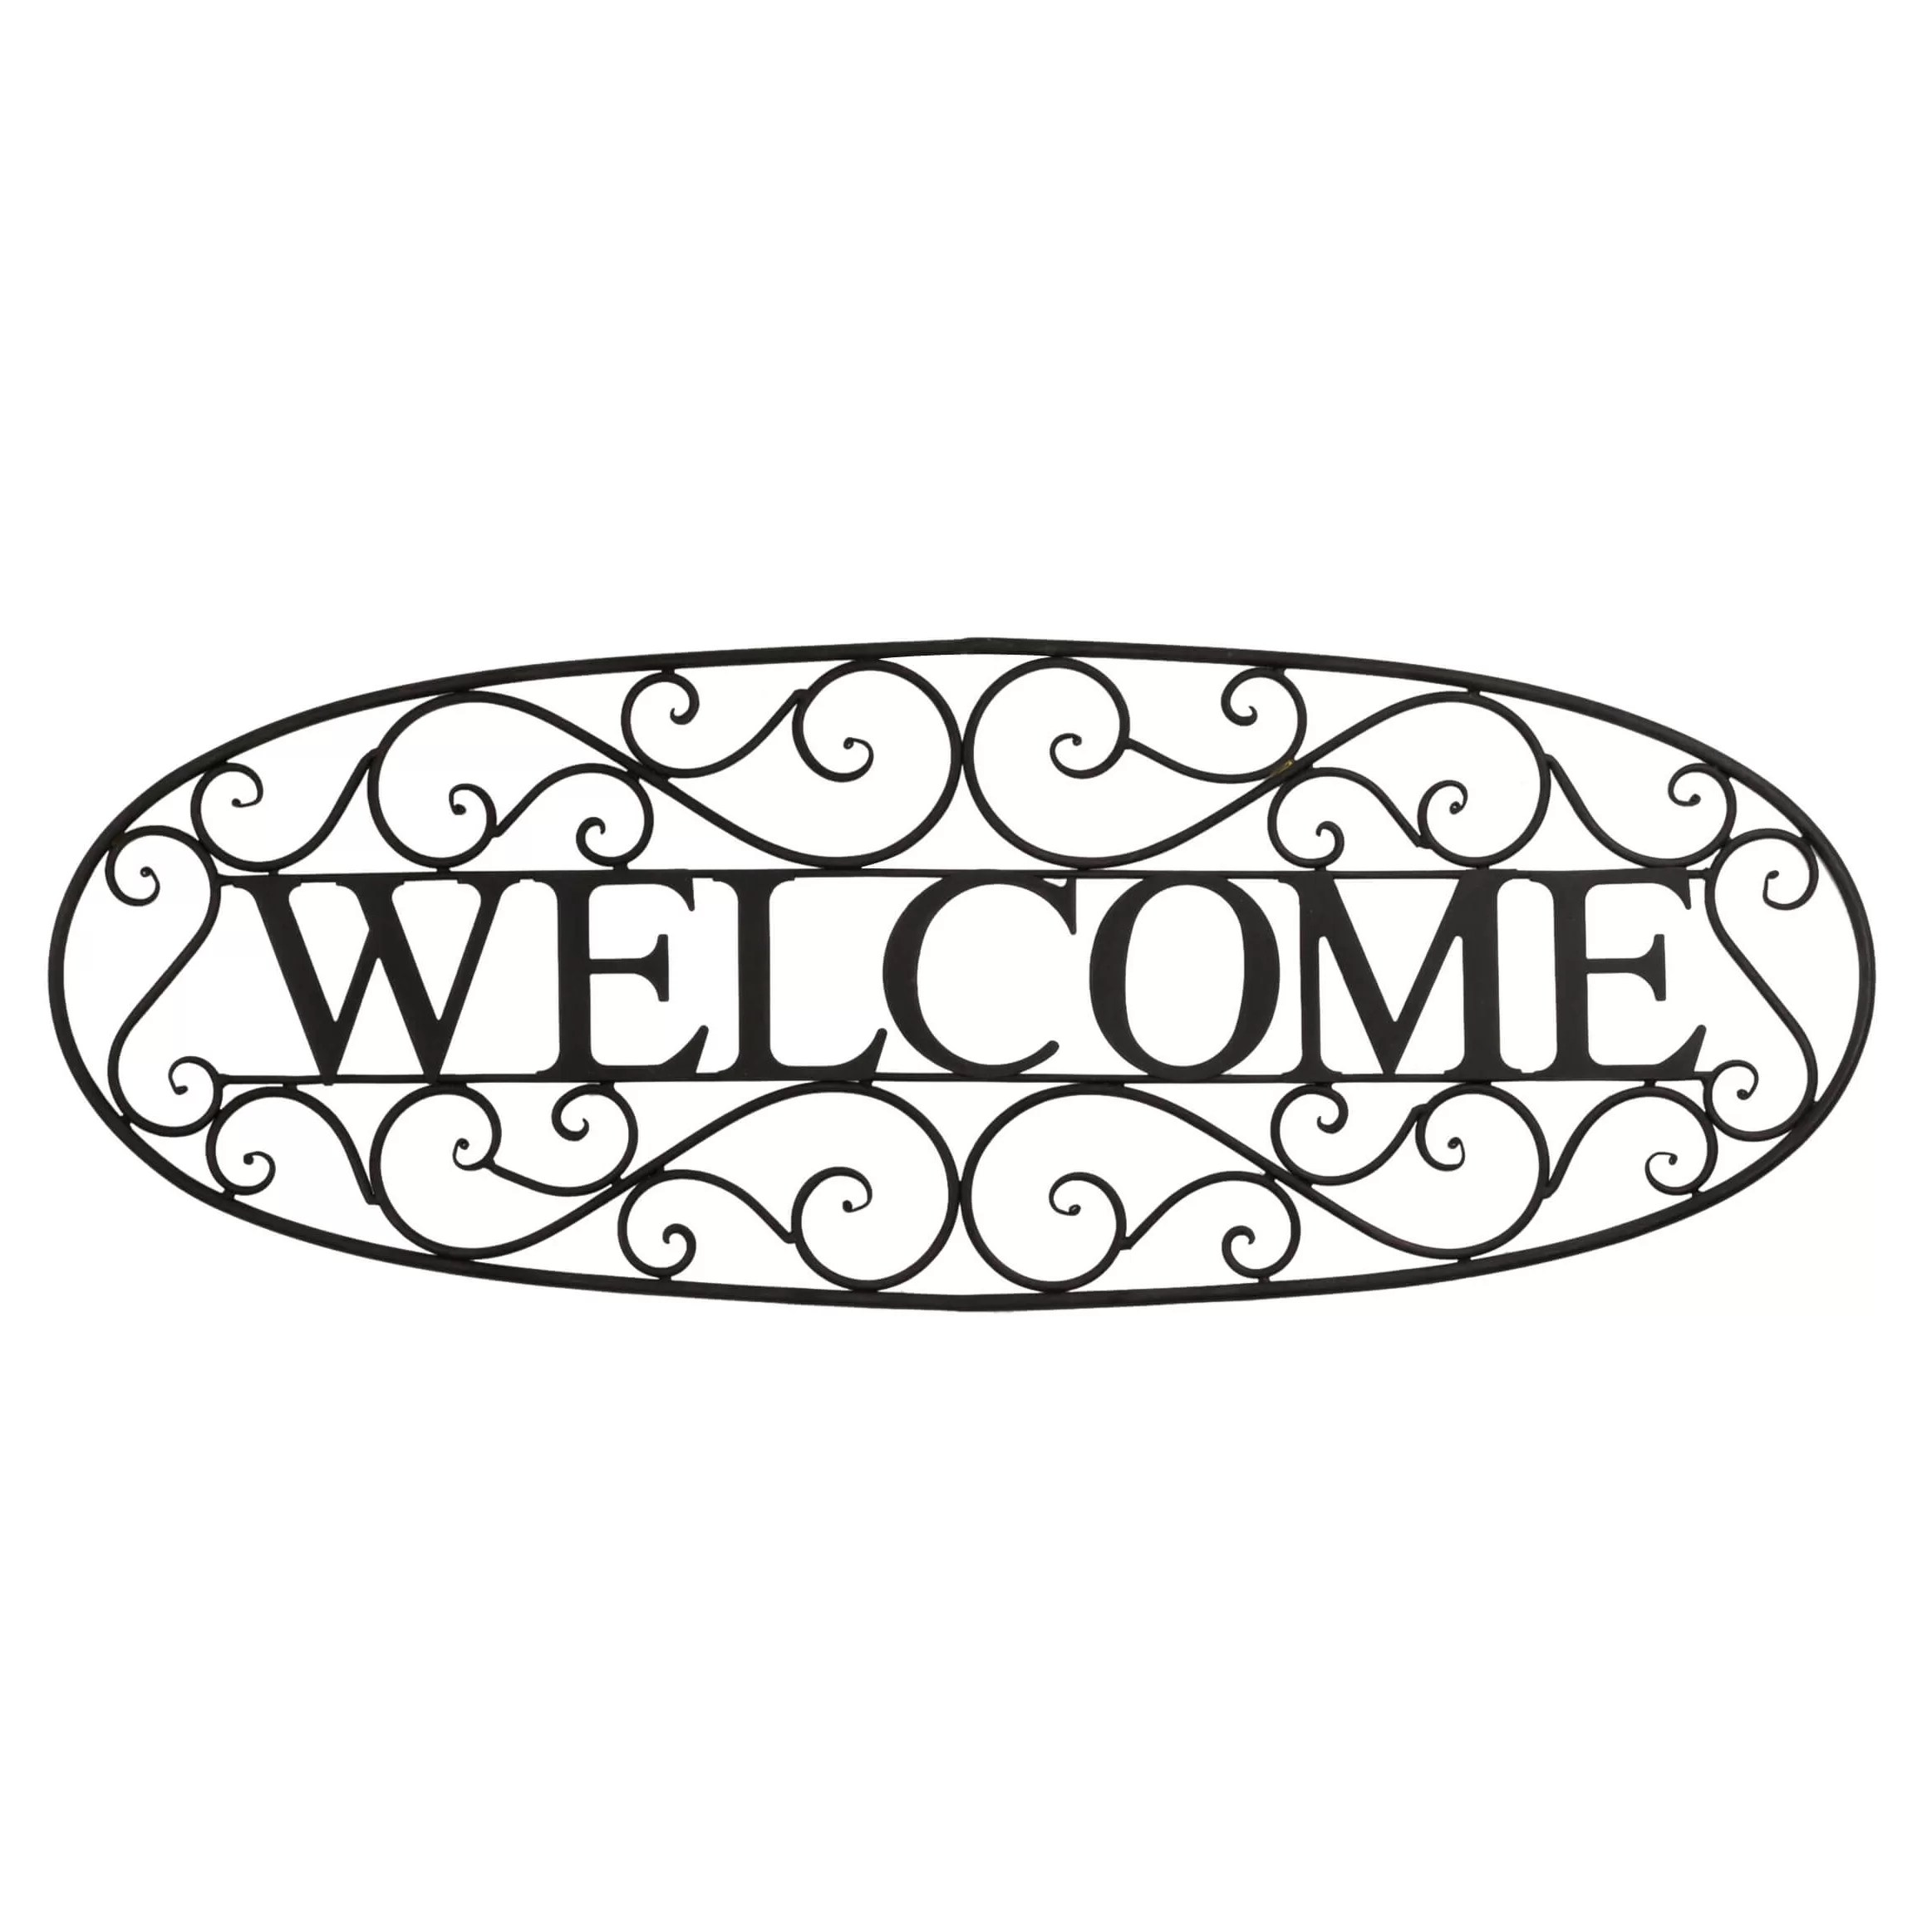 Bayaccents Welcome Sign Wrought Iron Wall Decor Amp Reviews